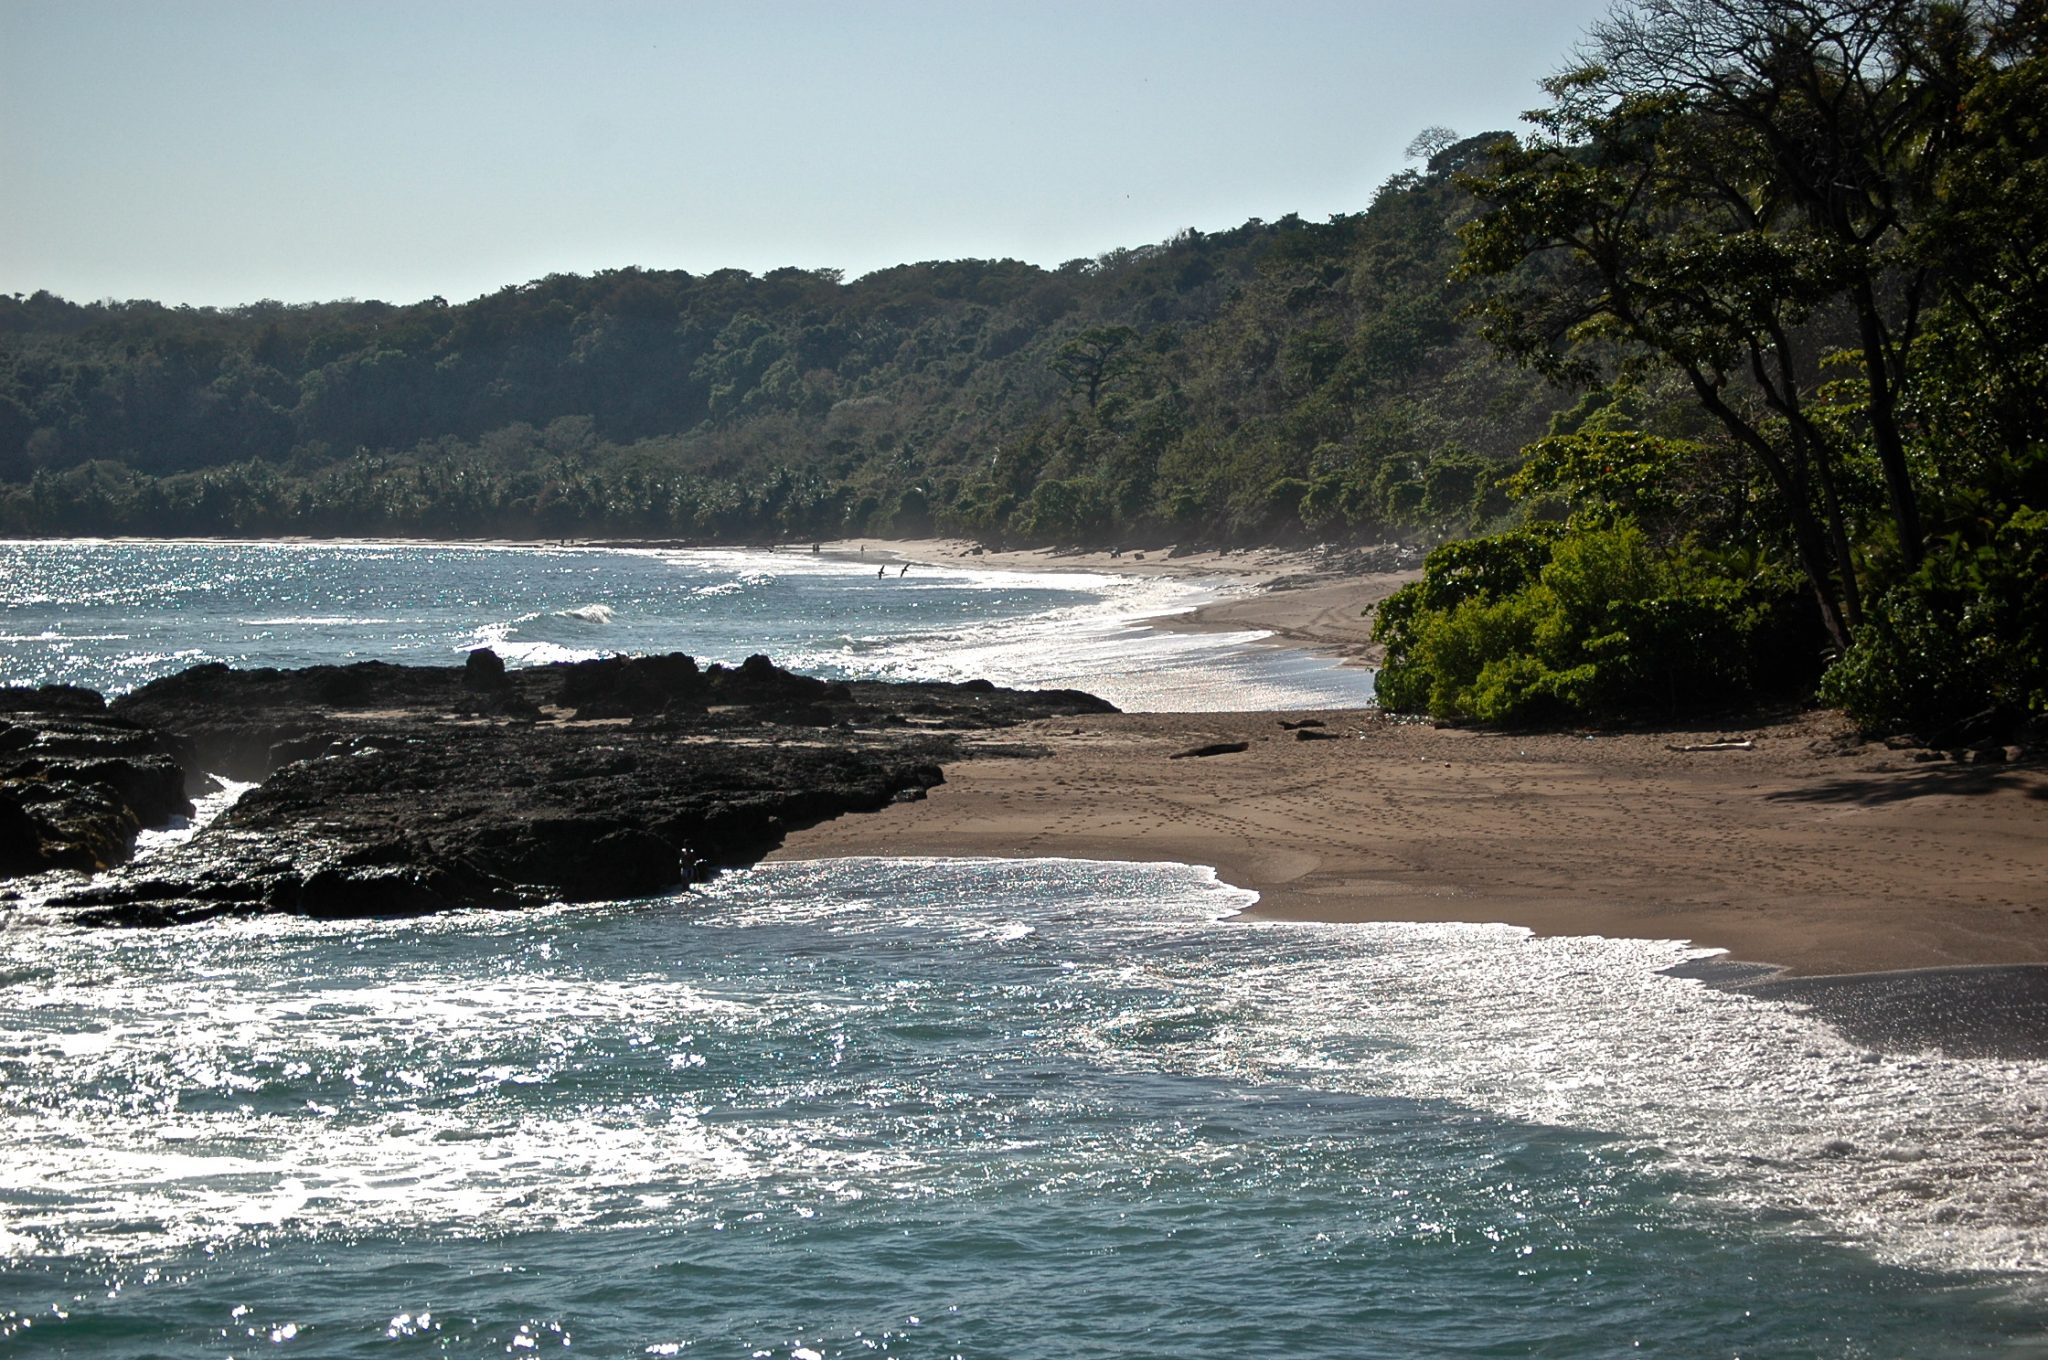 Best Beaches in Central America for Families: A relaxing morning view of Montezuma Beach, Costa Rica.